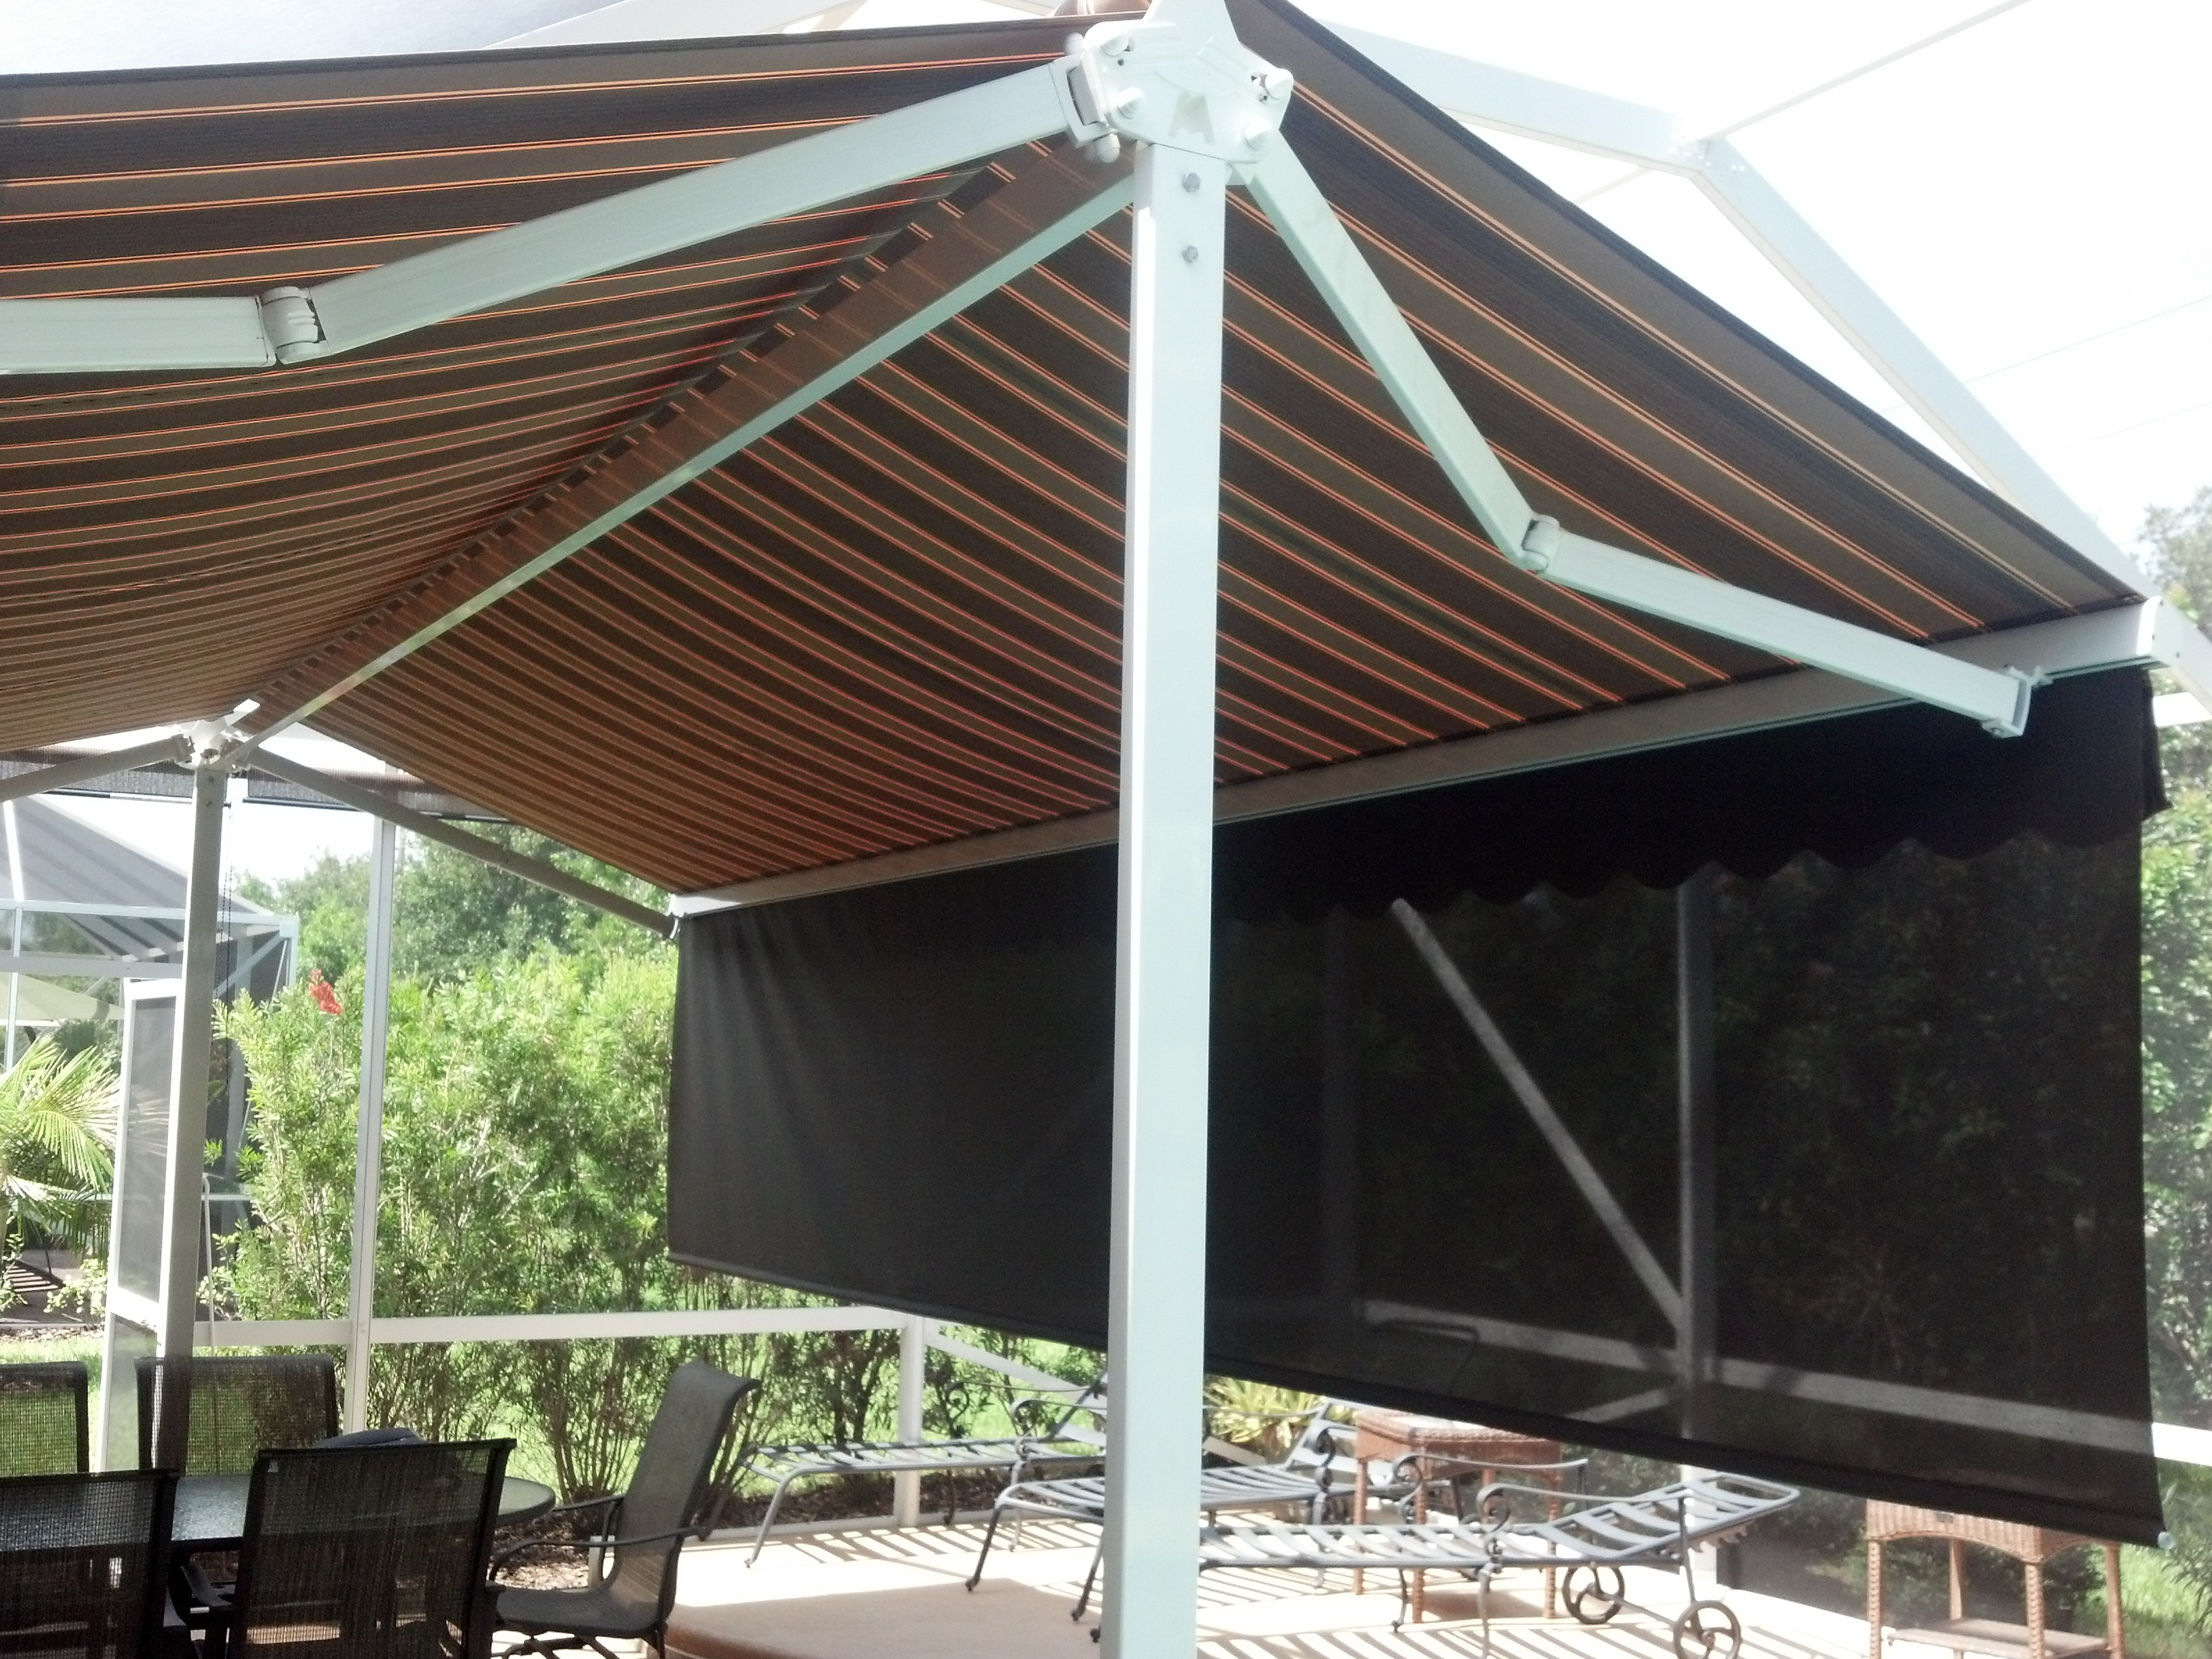 orlando coast terrace beach awnings retractable awning fl space daytona freestanding